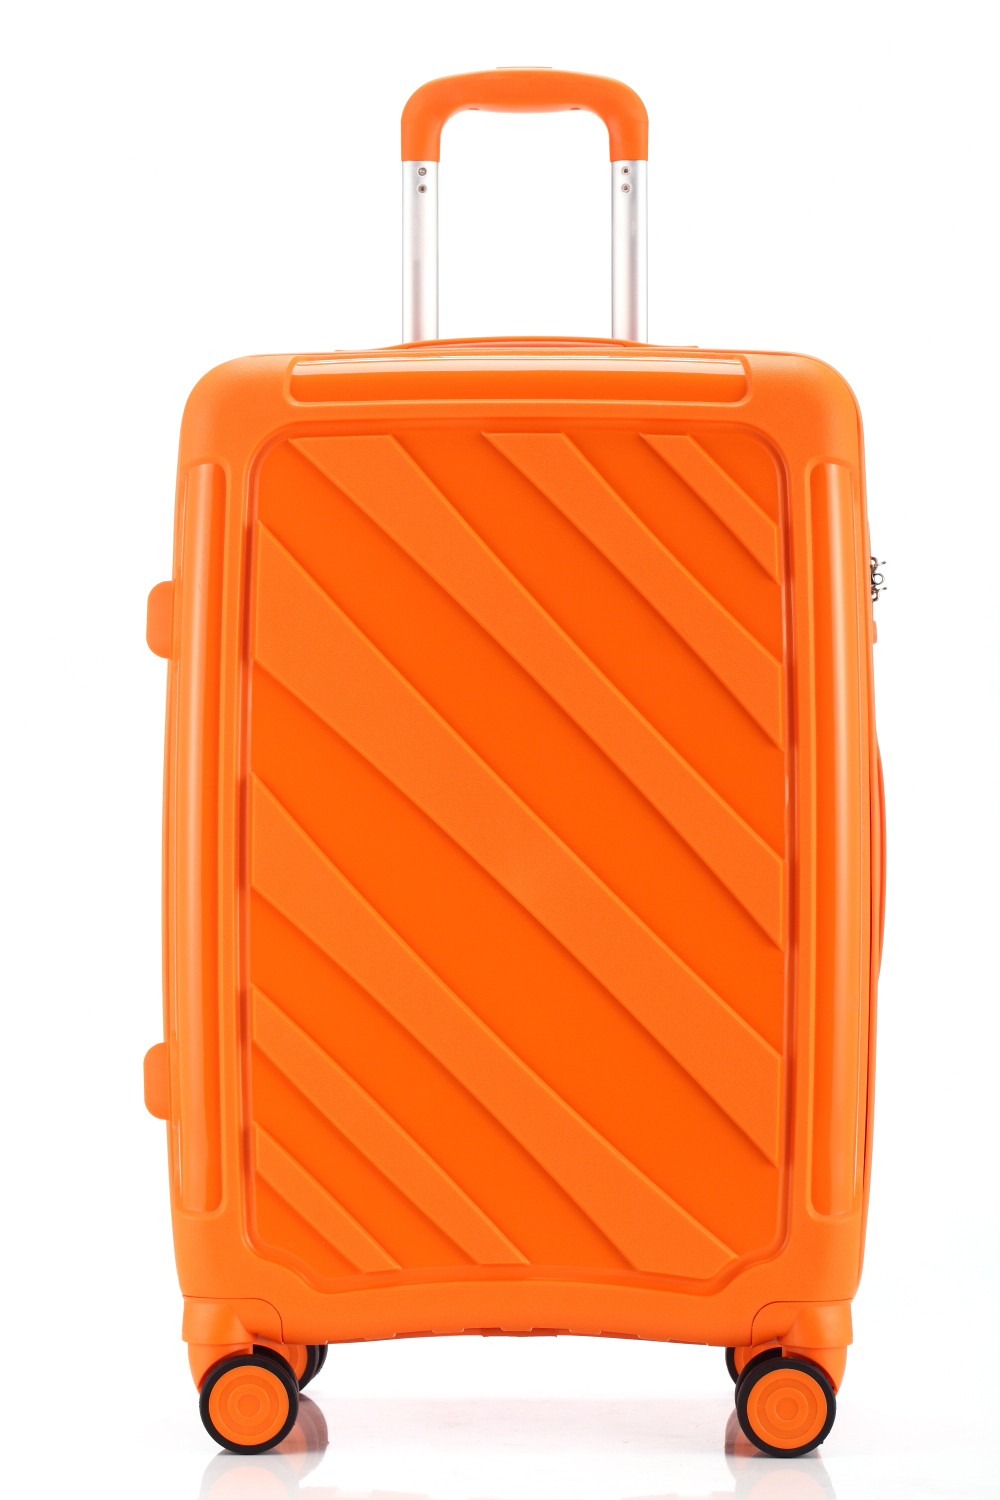 yanteng classic PP traveling luggage in orange color